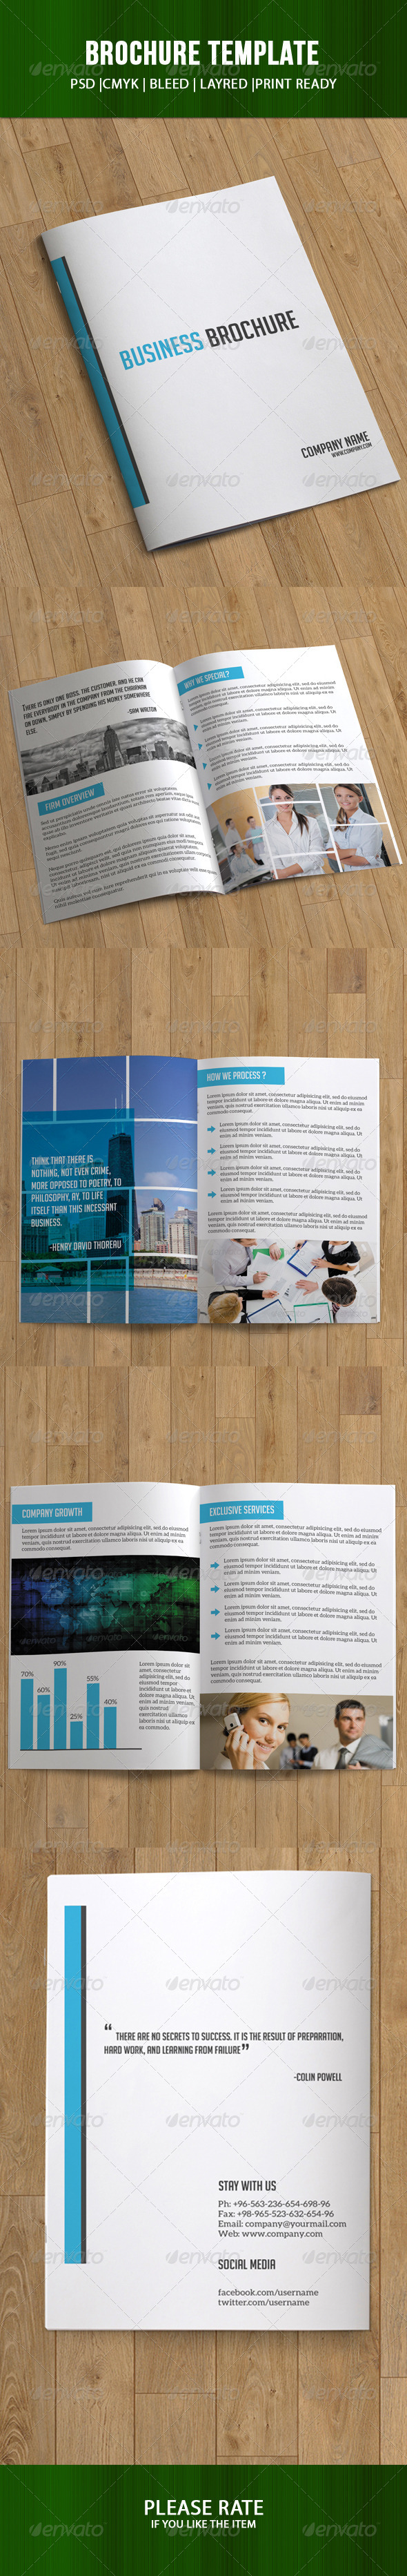 Bifold Business Brochure-8 Pages - Corporate Brochures